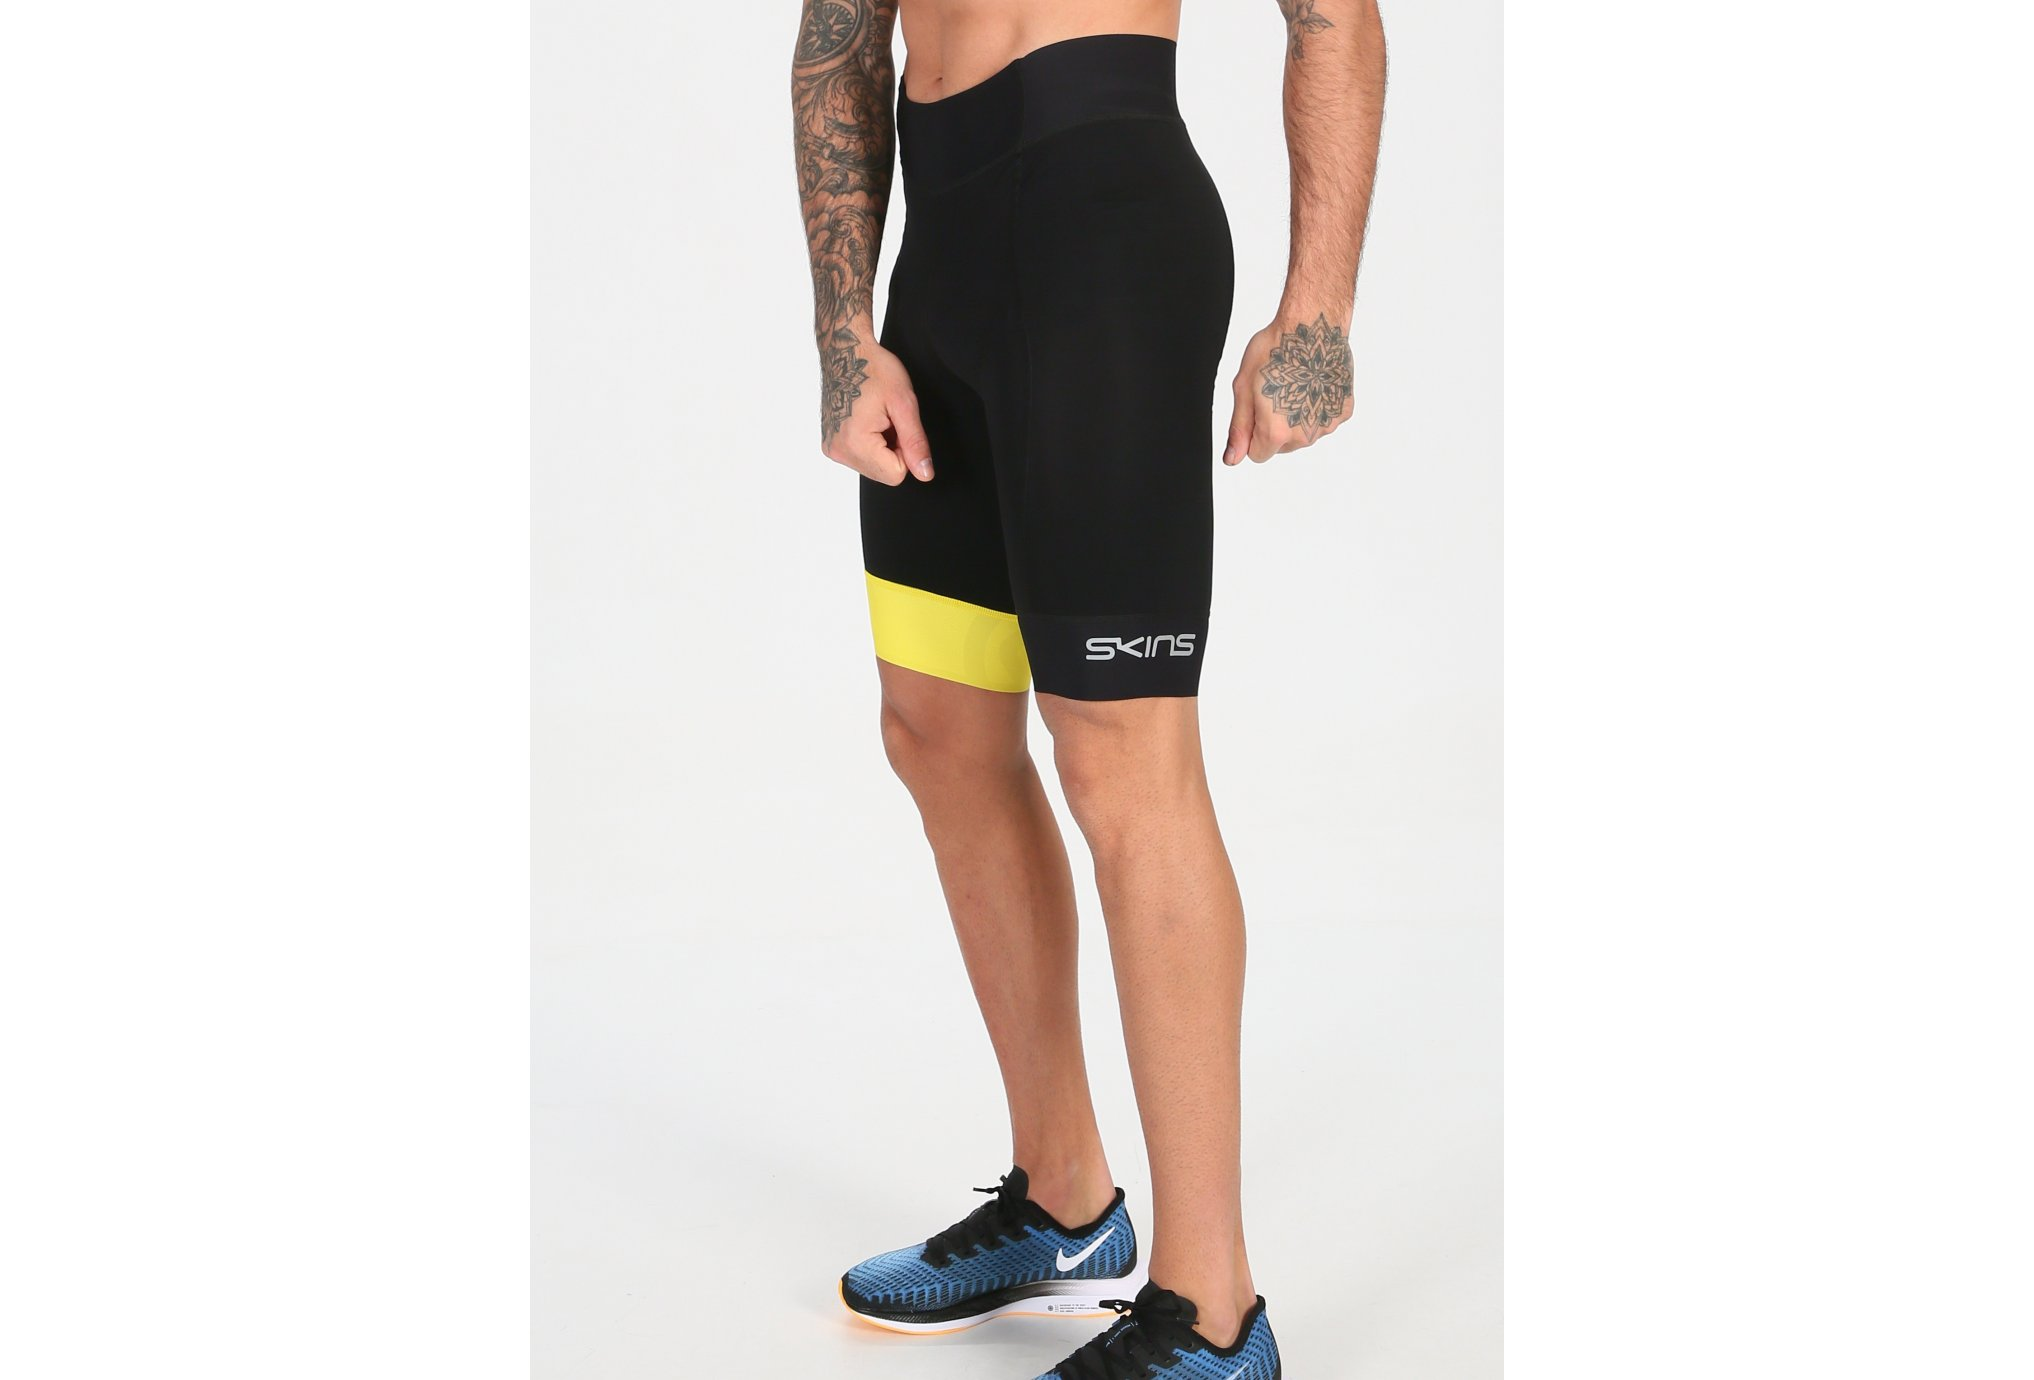 Skins Cycle DNAmic 1/2 M vêtement running homme